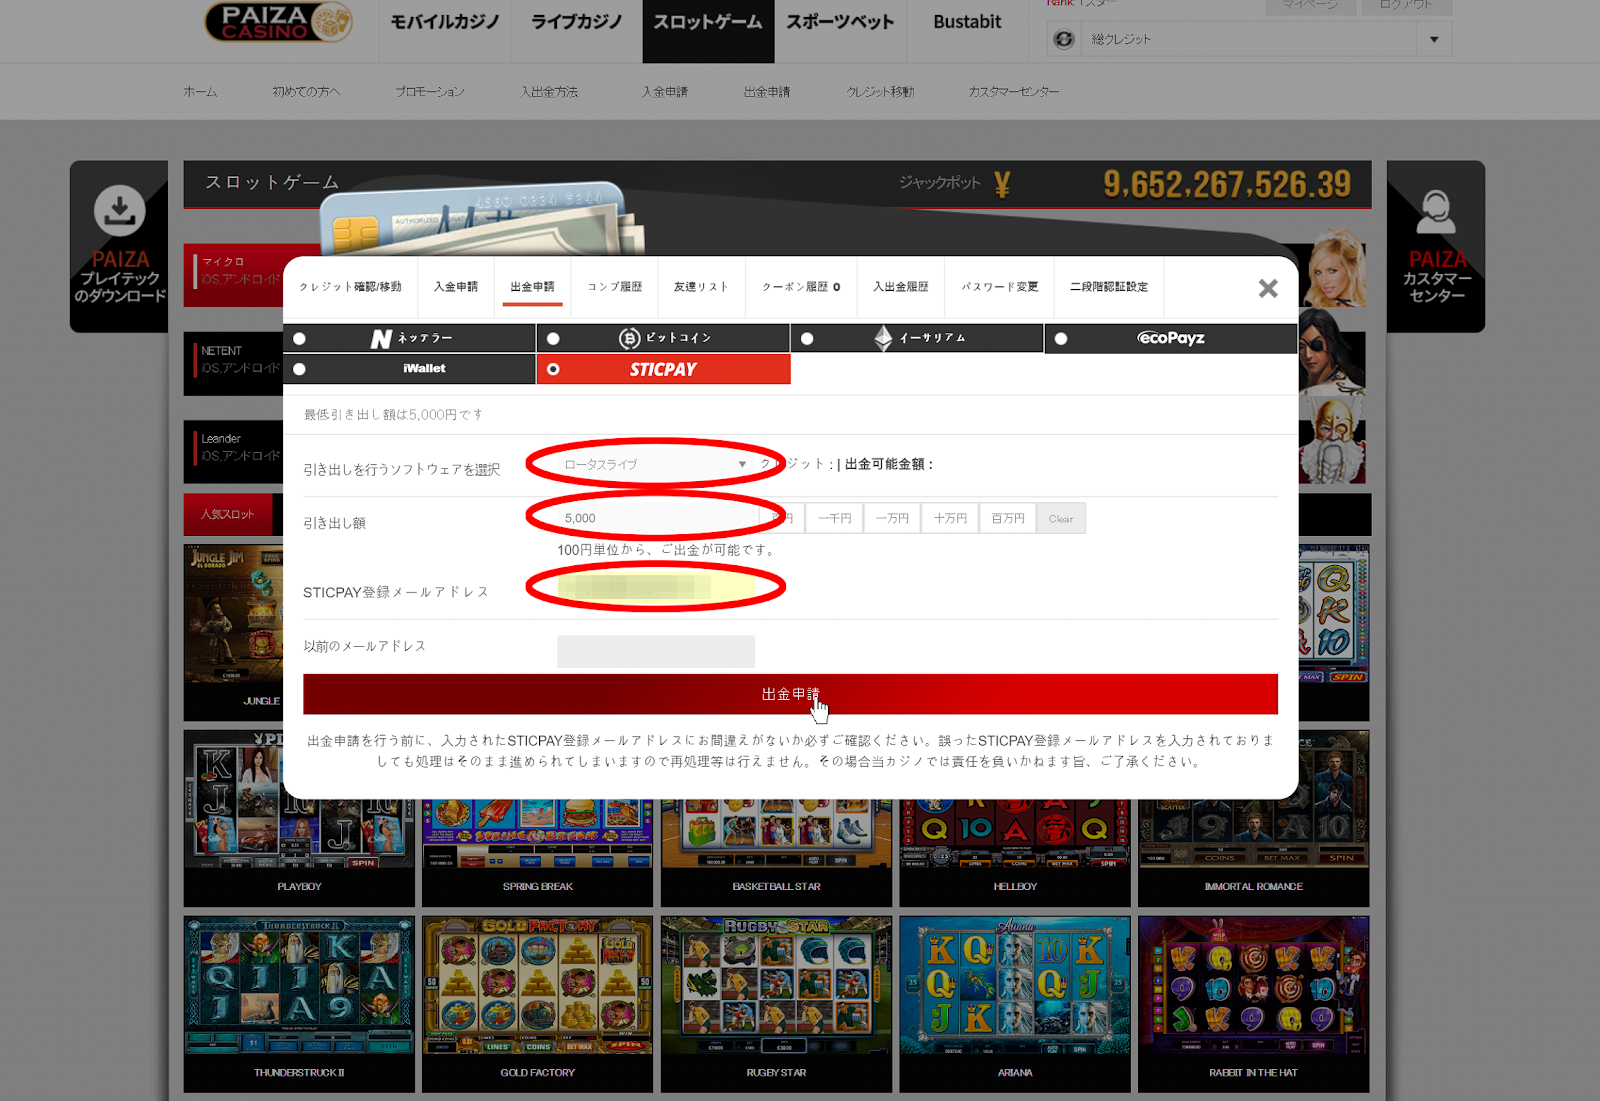 paiza casino sticpay withdraw